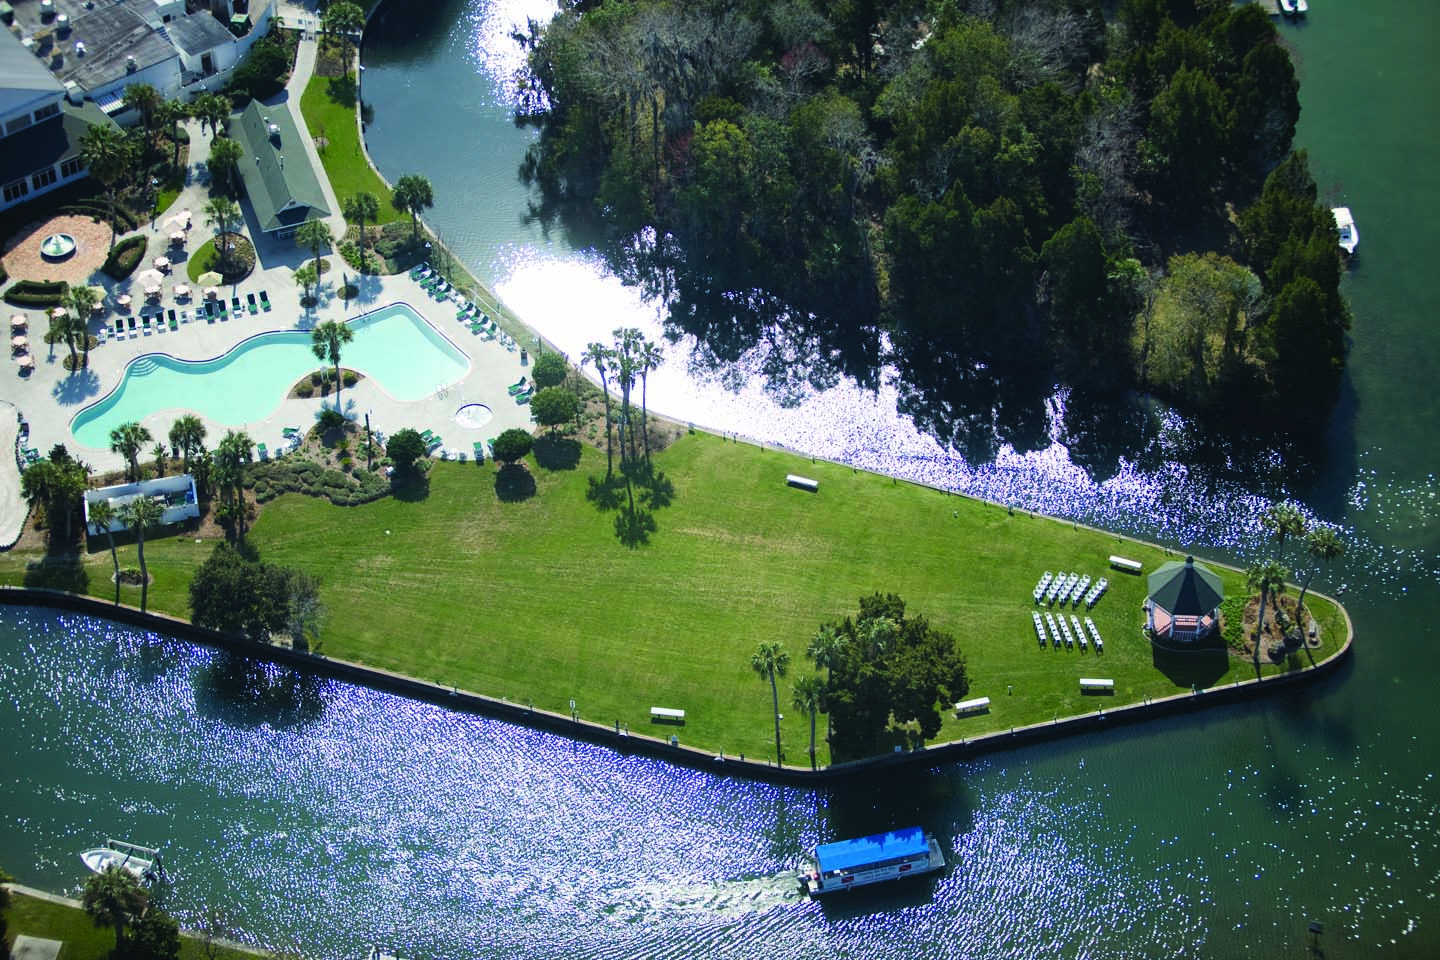 Did you know Florida has great freshwater destinations